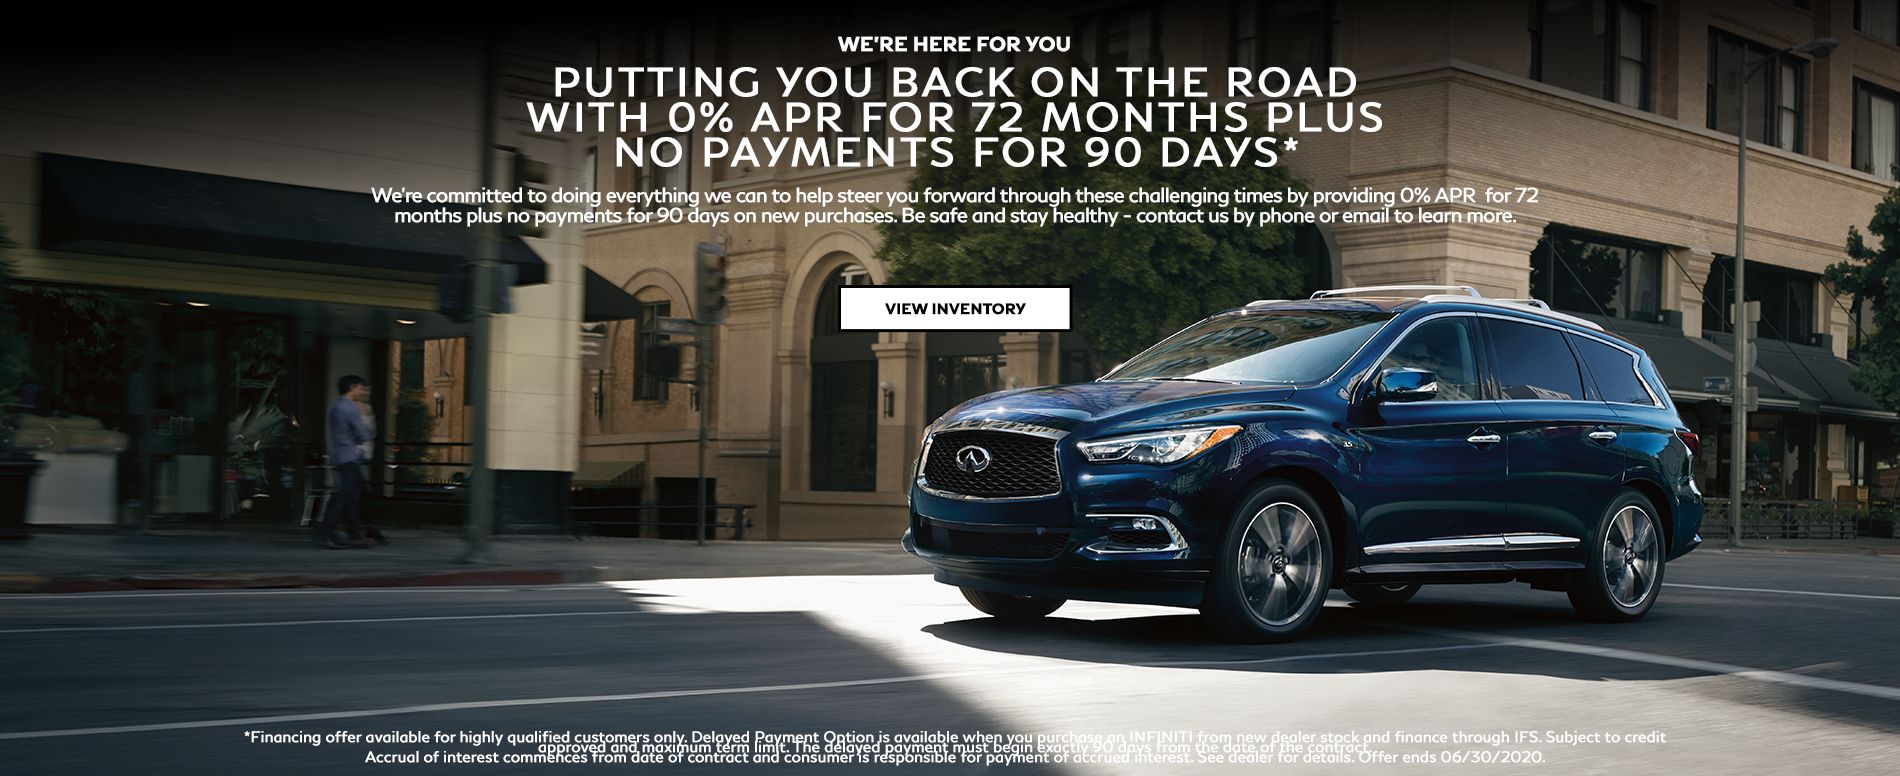 DR INFINITI North Offering 0% APR for 72 months plus 90 days deferred payment